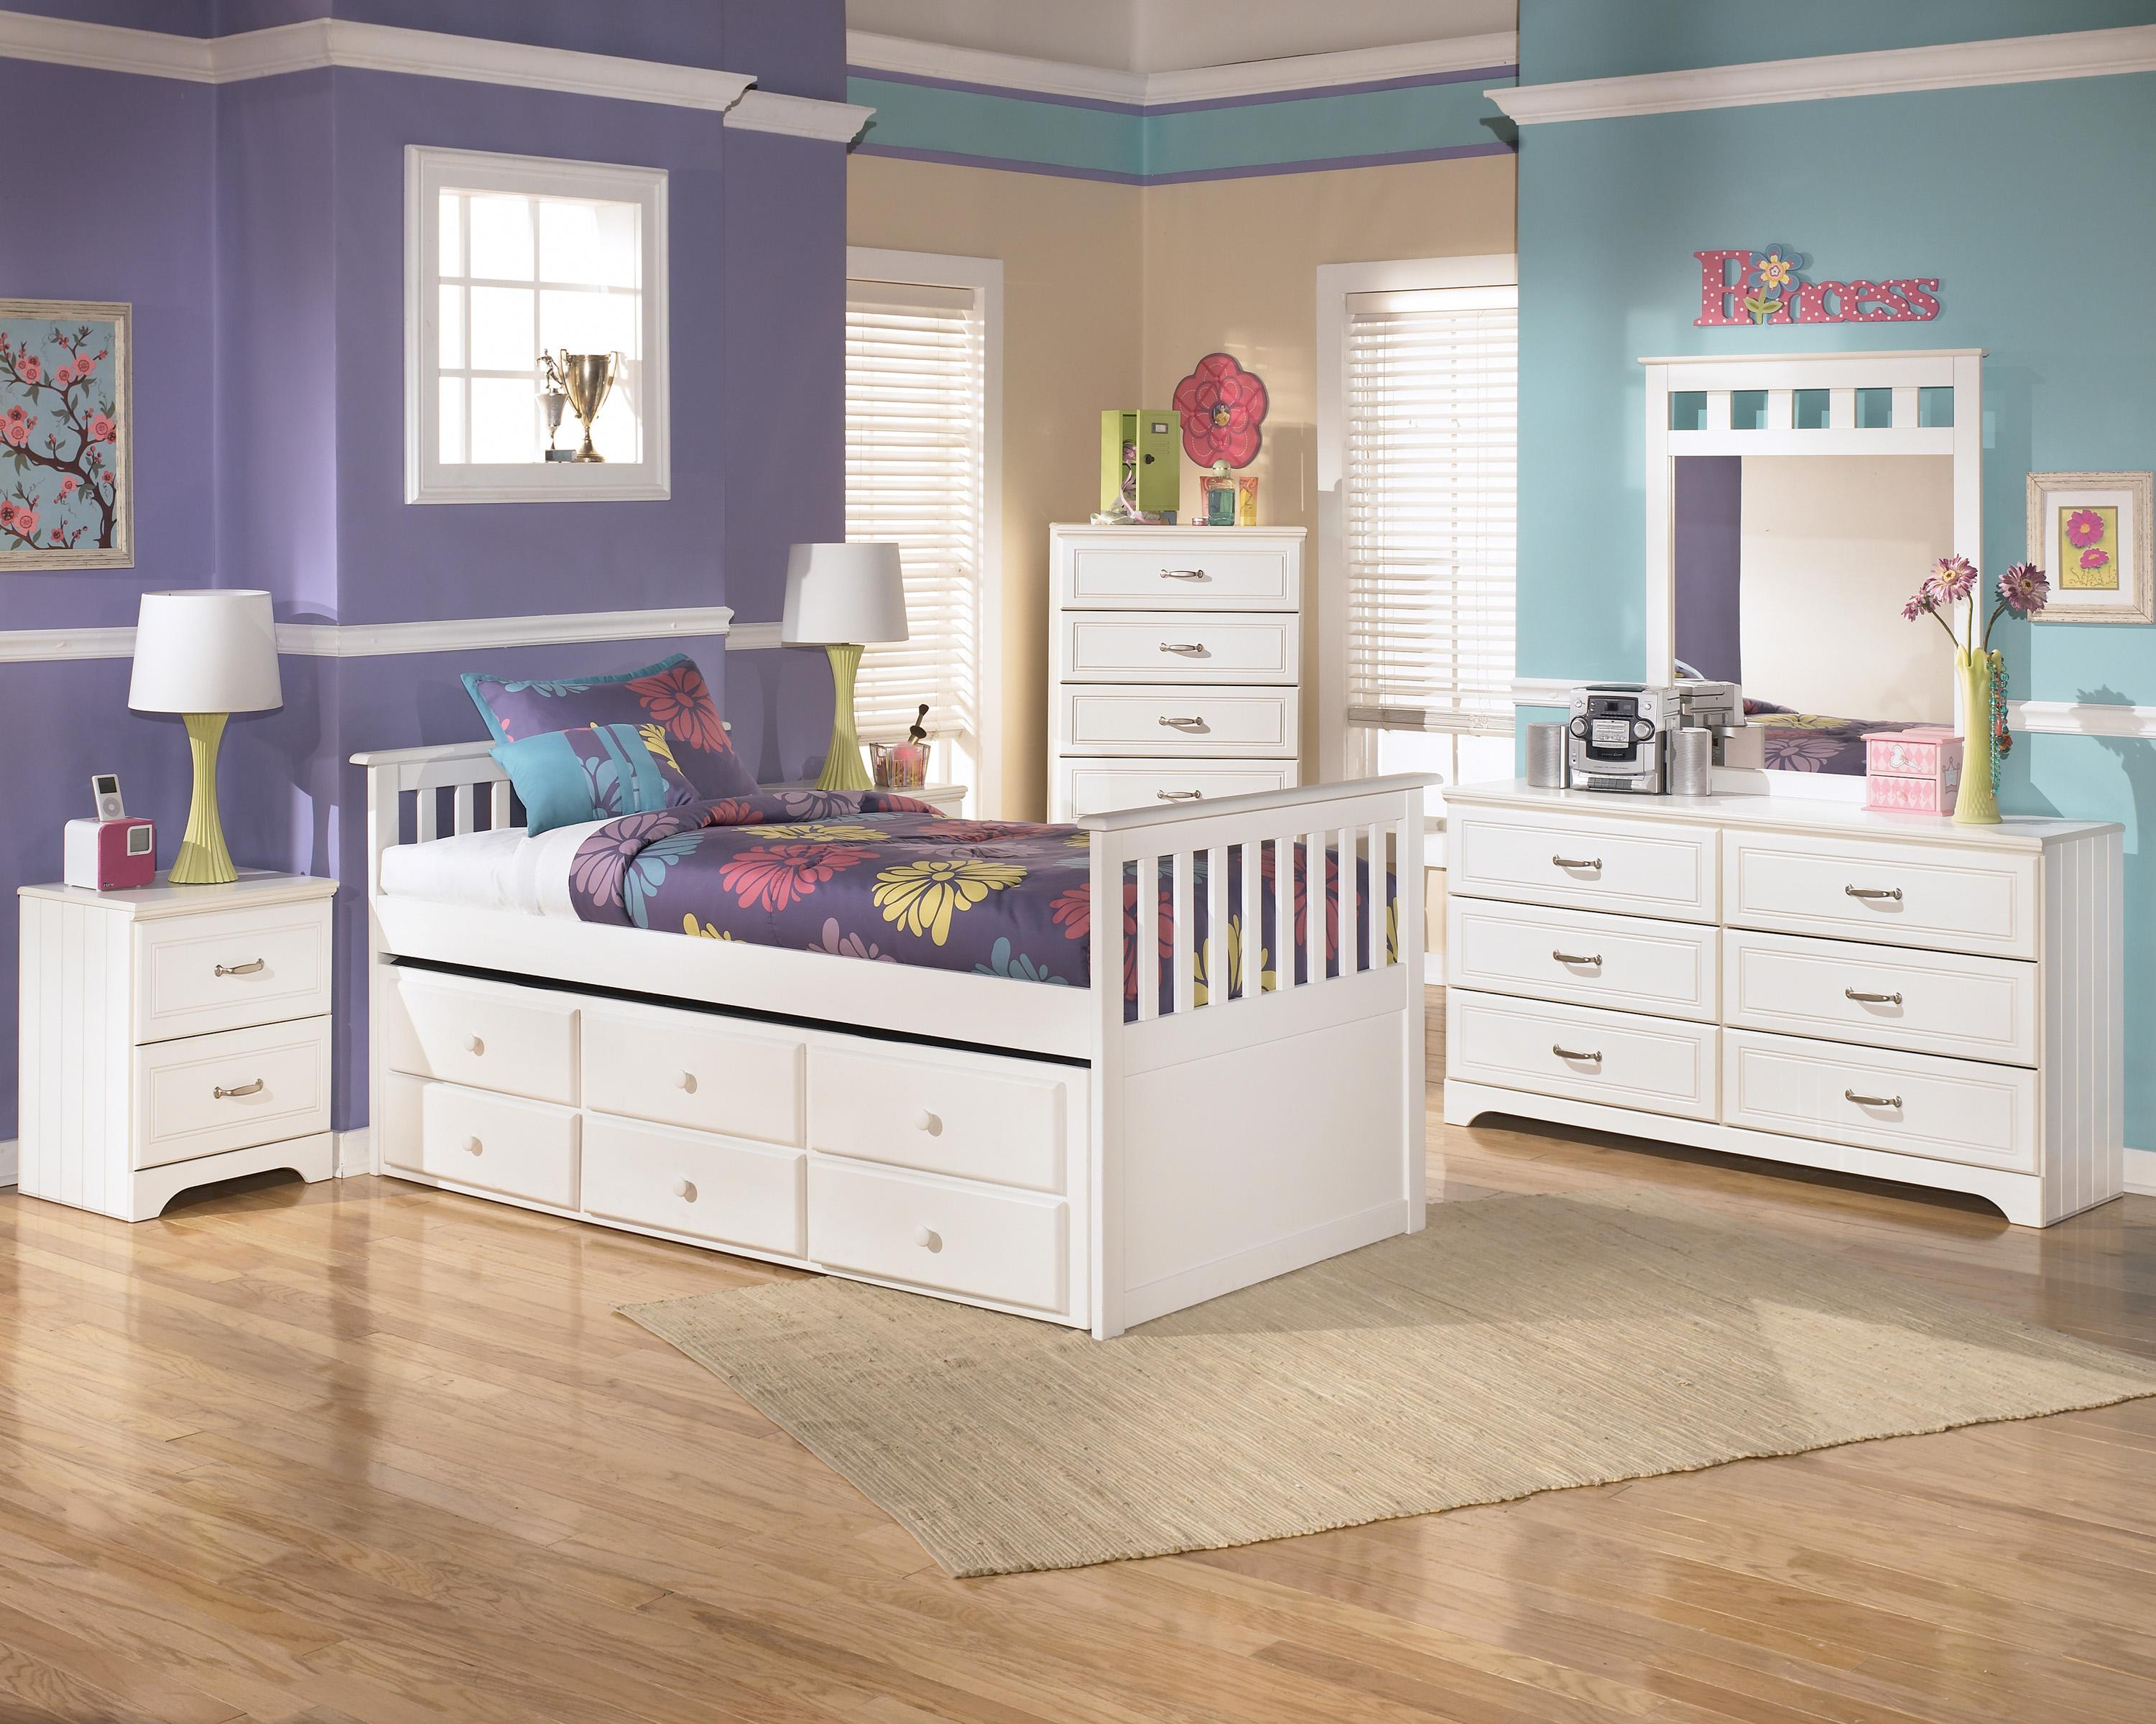 Signature Design by Ashley Lulu Twin Bedroom Group - Item Number: B102 T Bedroom Group 3